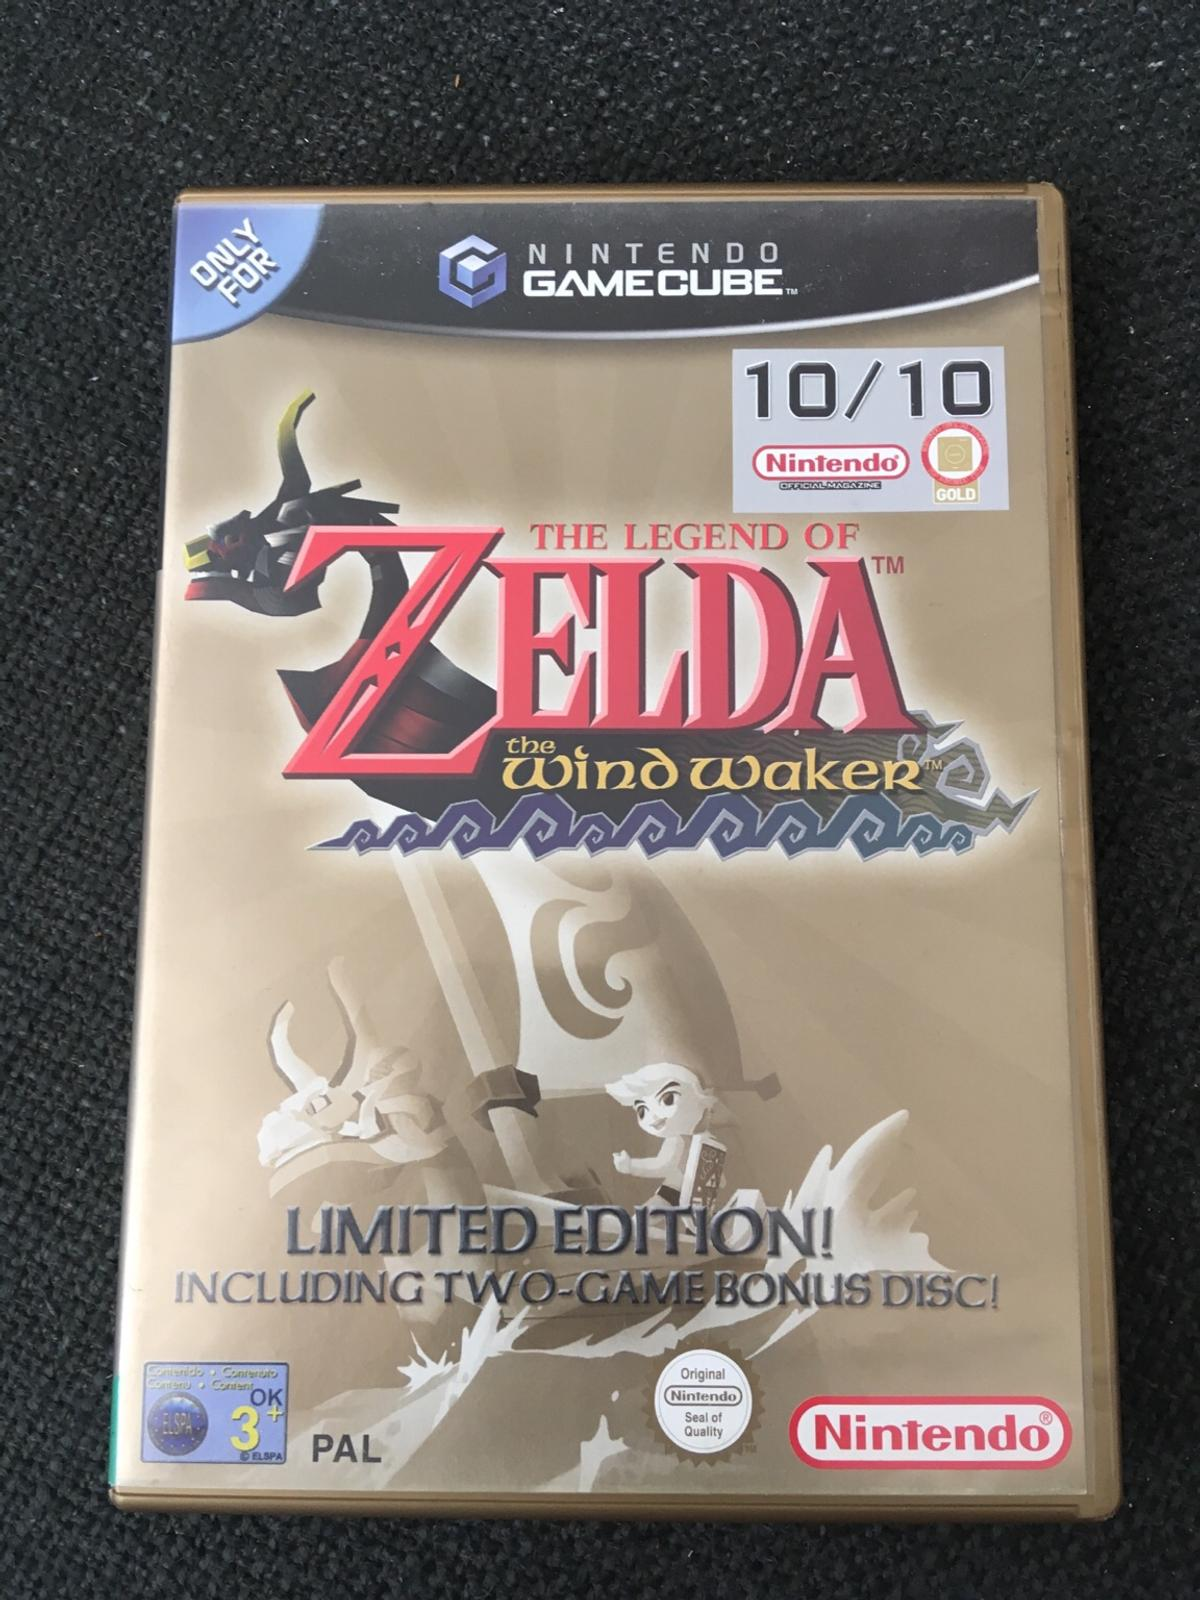 Zelda The Wind Waker Limited Edition GameCube in BR3 Bromley for